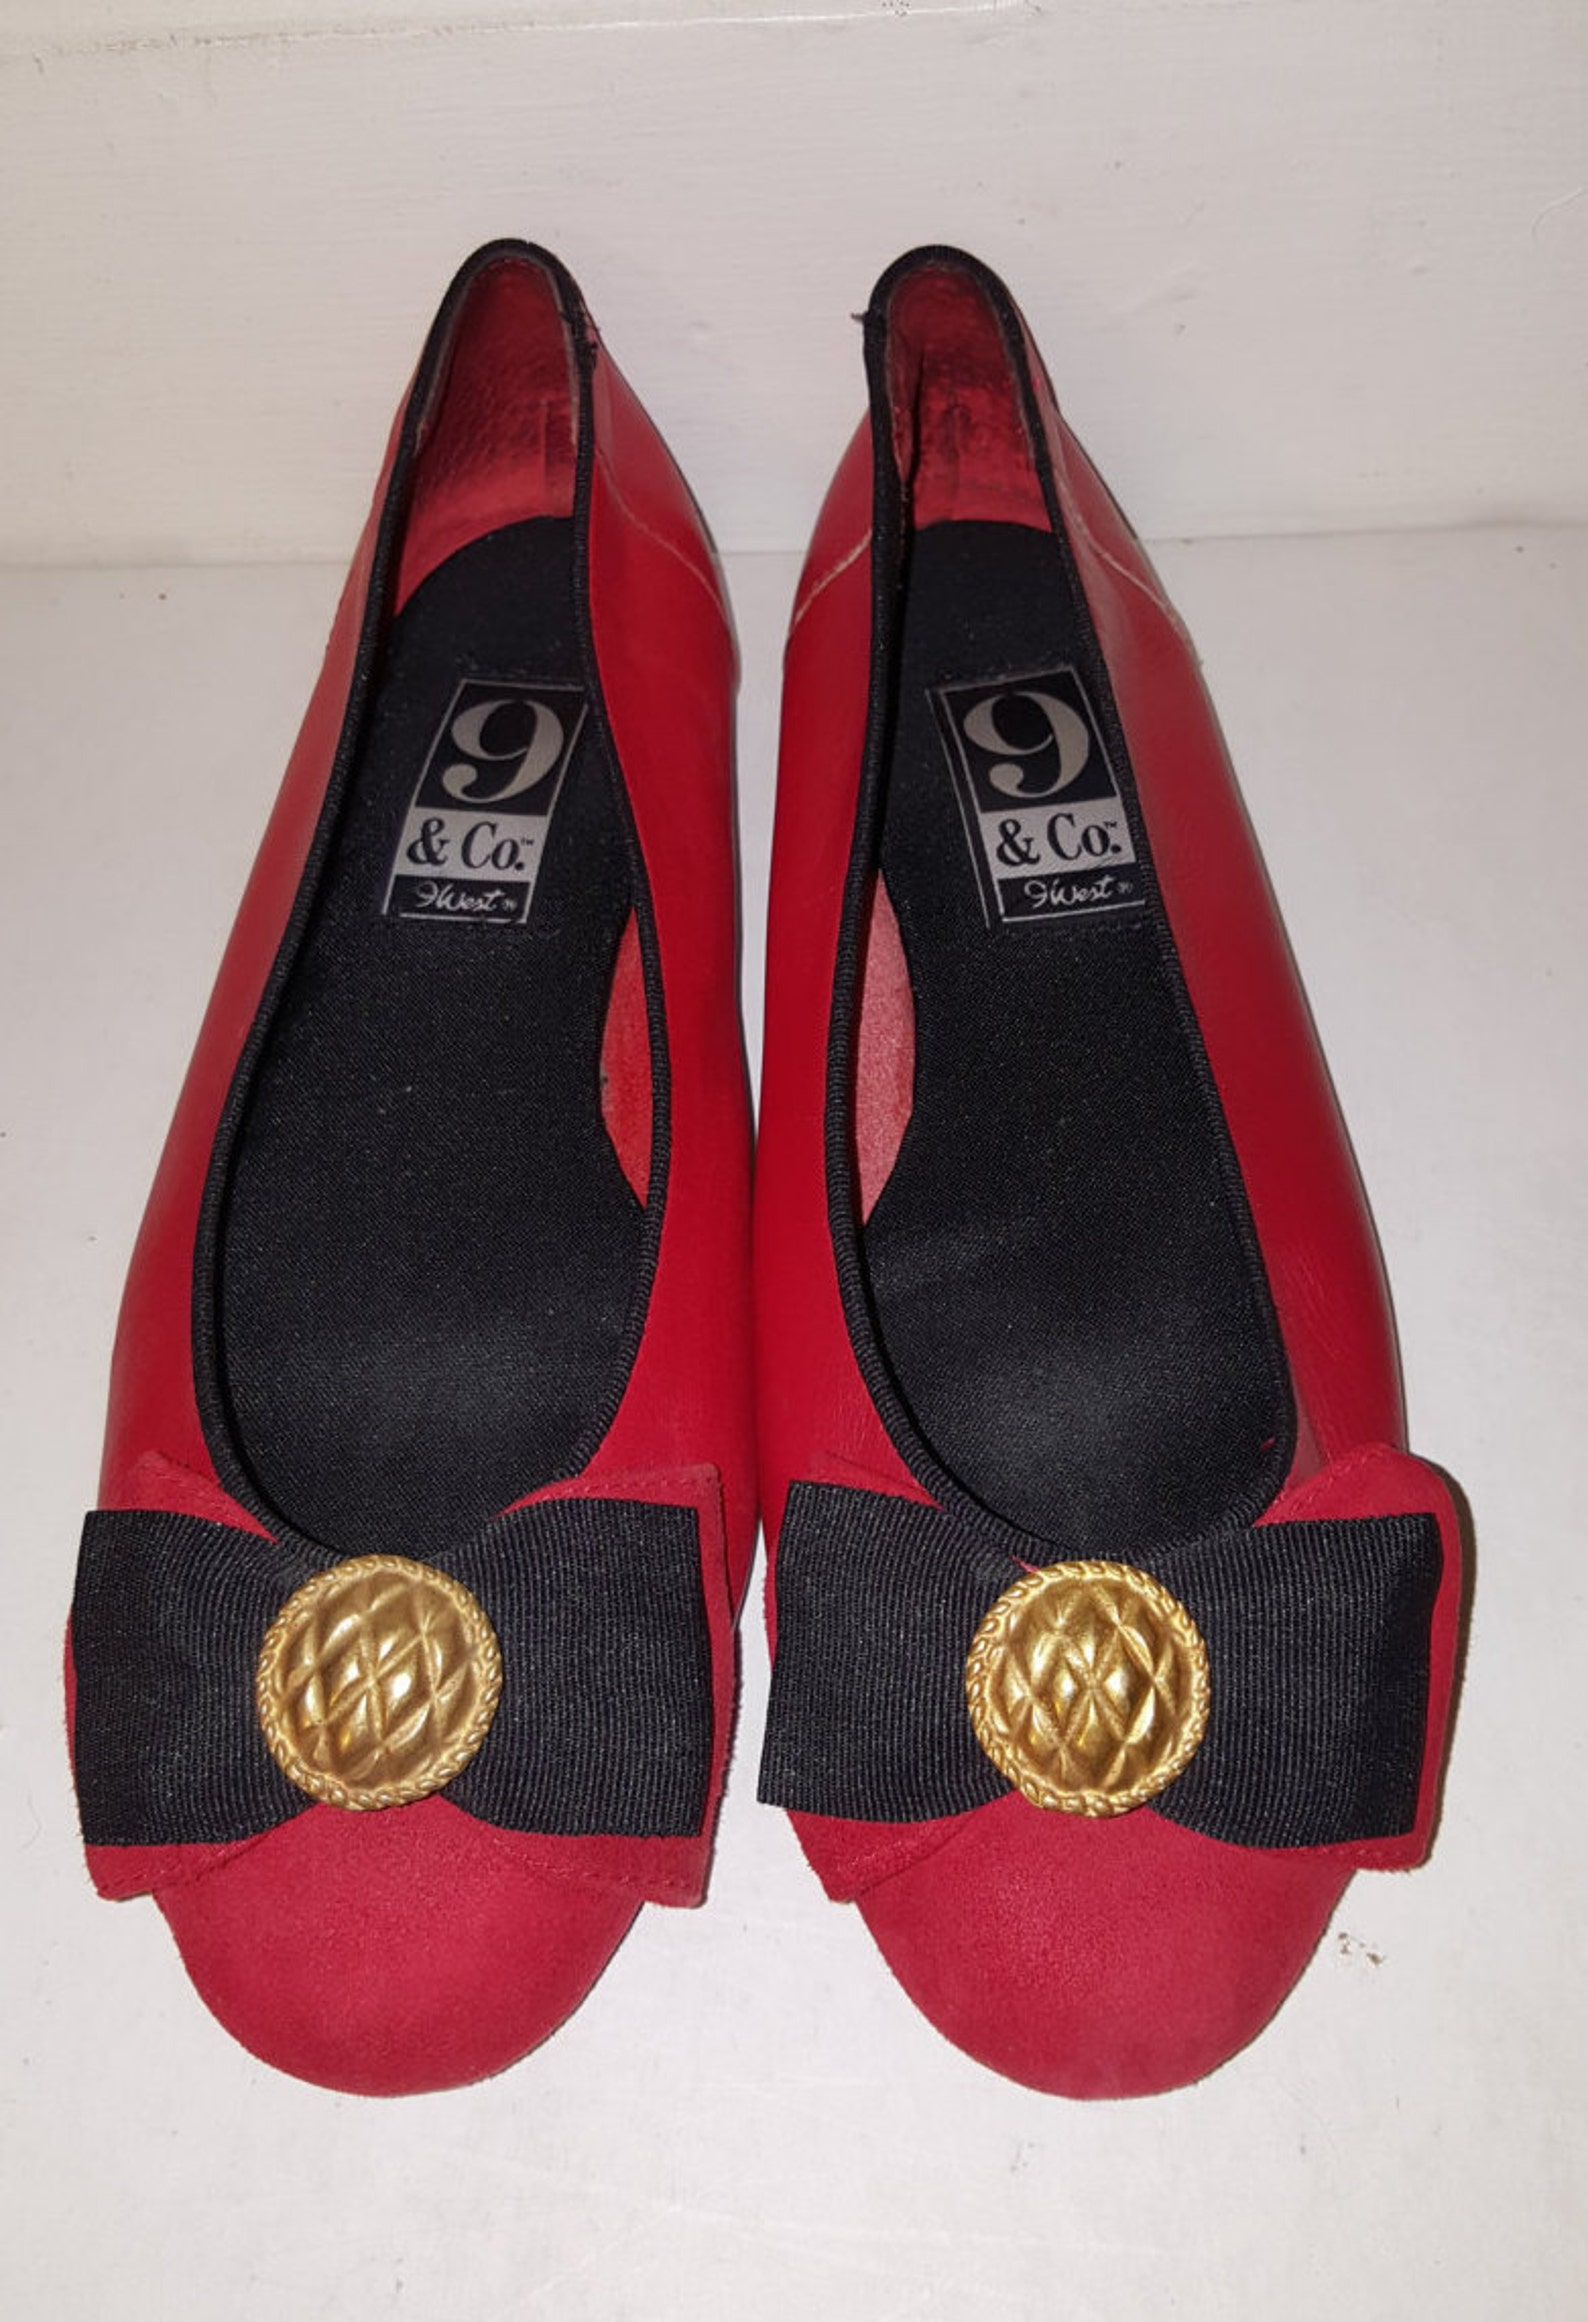 the red shoes // 9 west ballet flats 80's suede 9&co. bow shoes 90's leather size 7.5